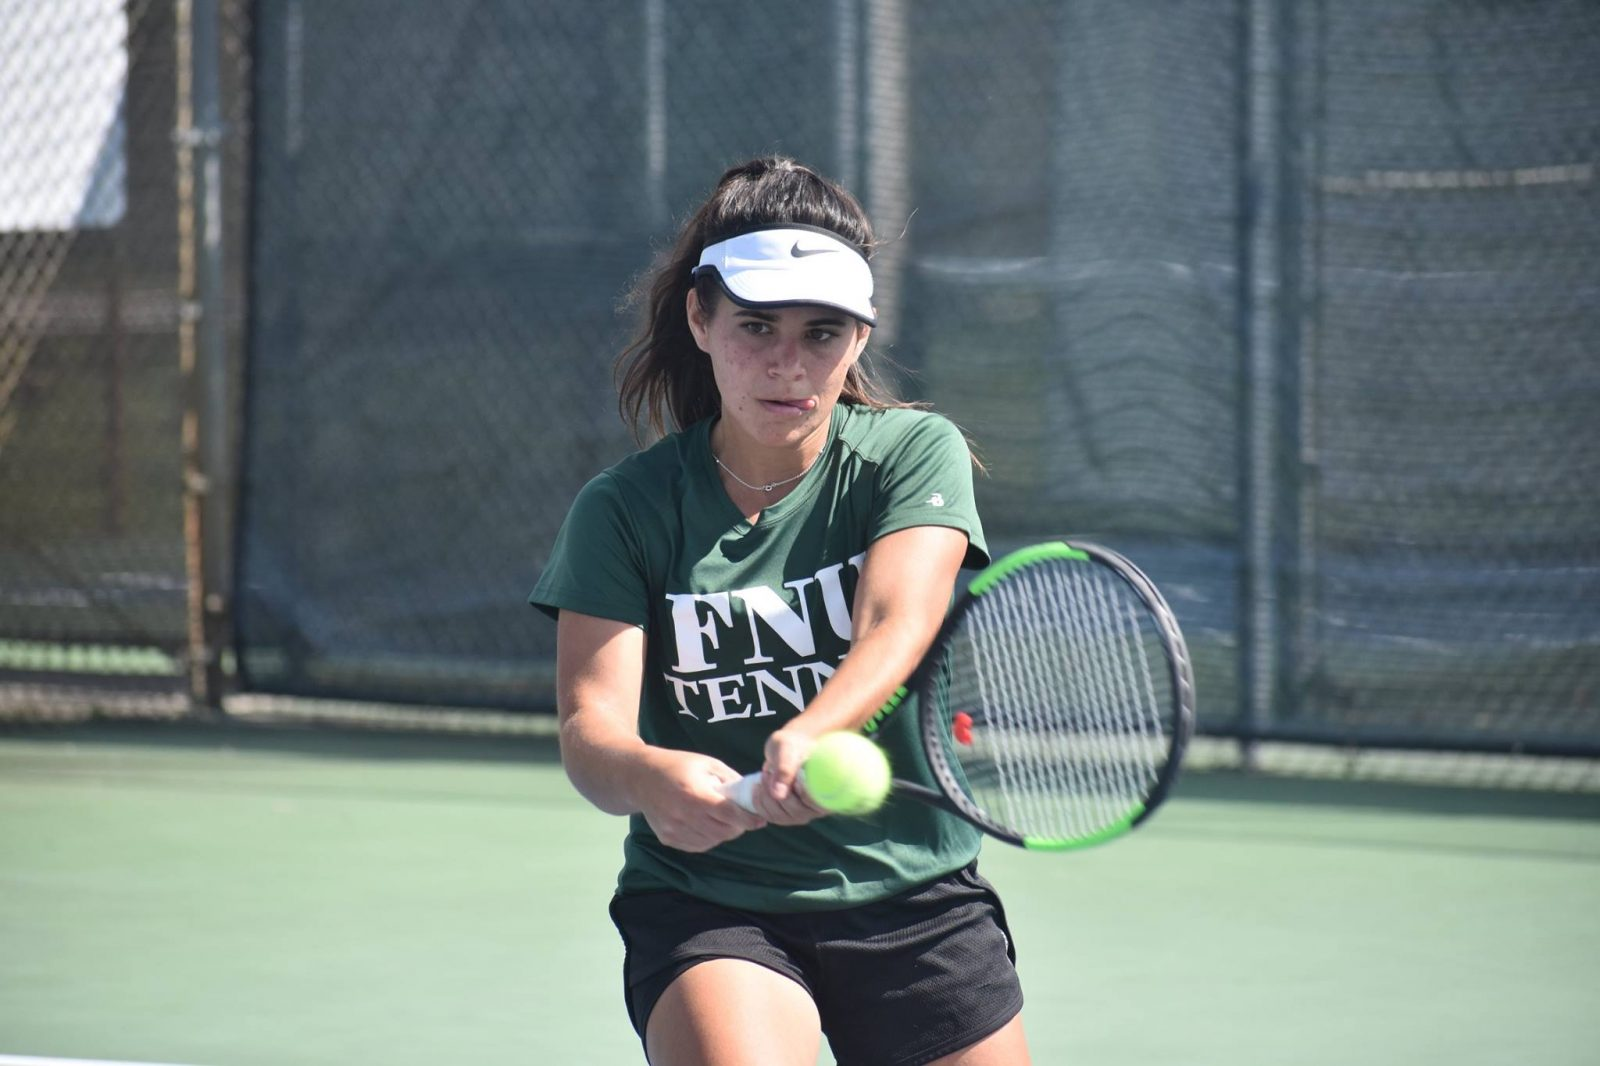 FNU tennis player Candela hitting the ball